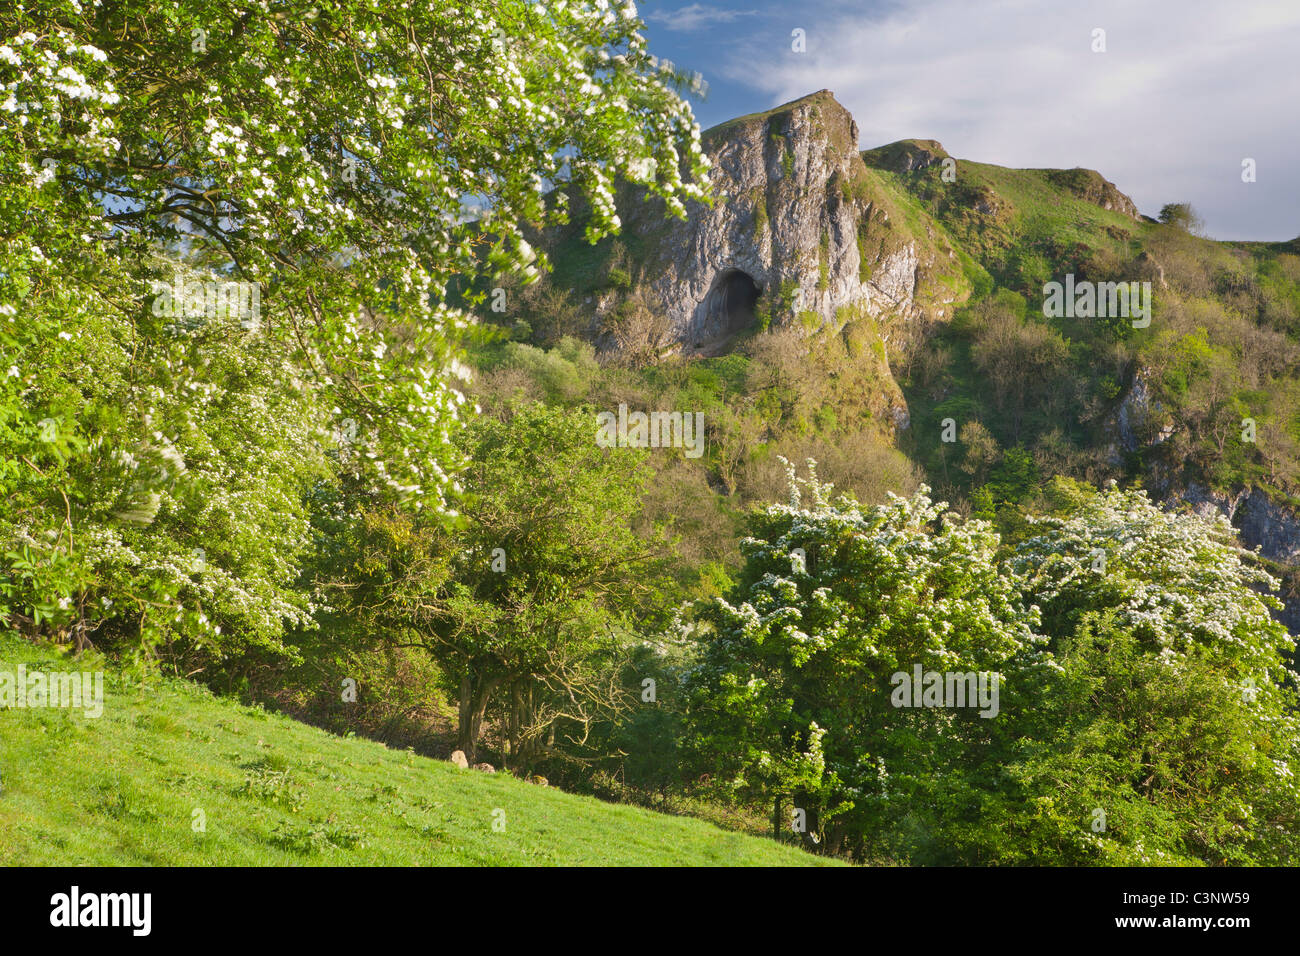 Thor's Cave with hawthorn trees in blossom, Manifold Valley, Staffordshire Moorlands, Peak District National Park, Stock Photo